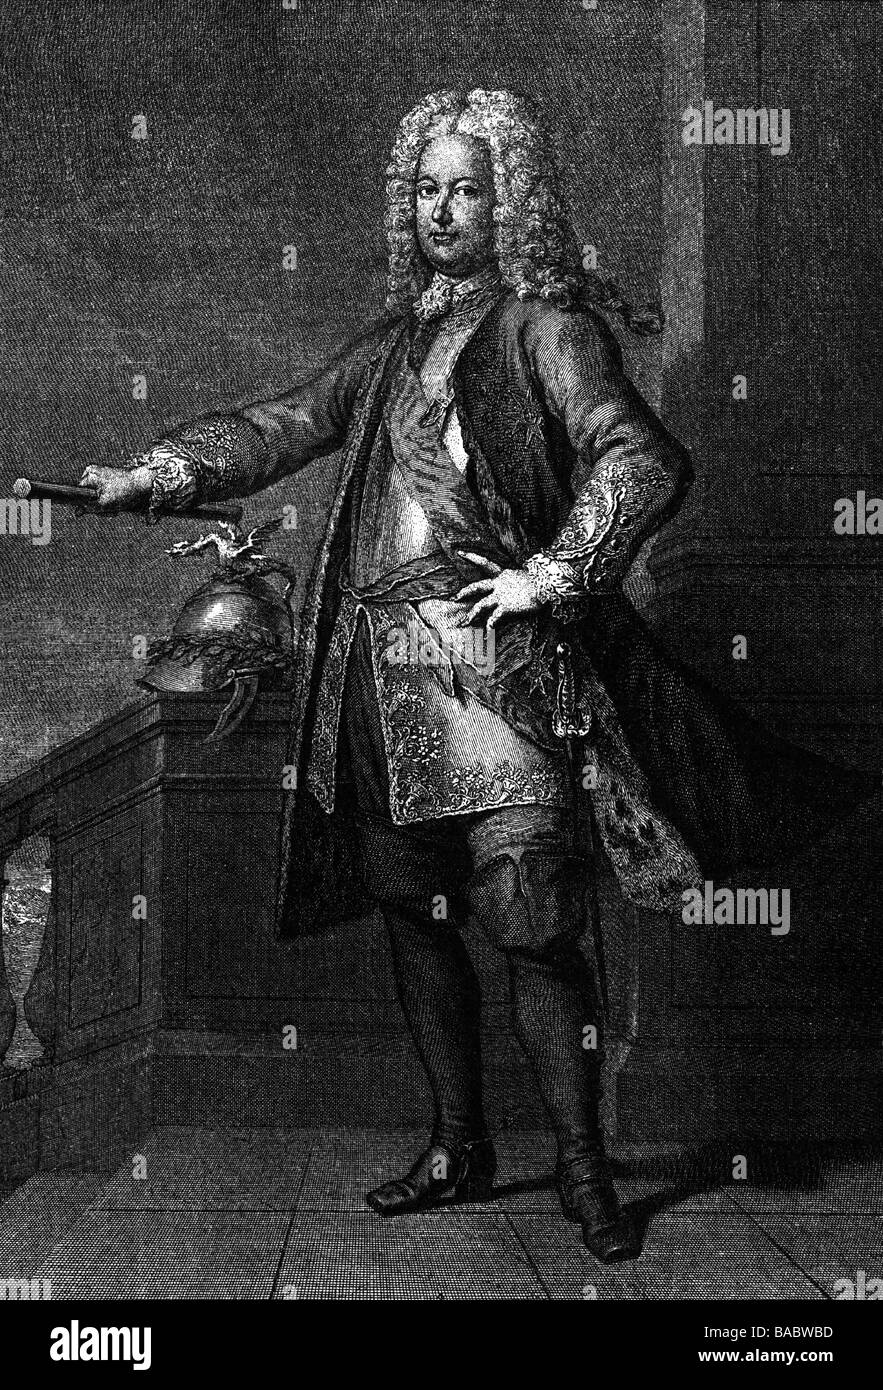 Stanislav I Leszczynski, 20.10 .1677 - 23.2.1766, Ling of Poland , Artist's Copyright has not to be cleared - Stock Image